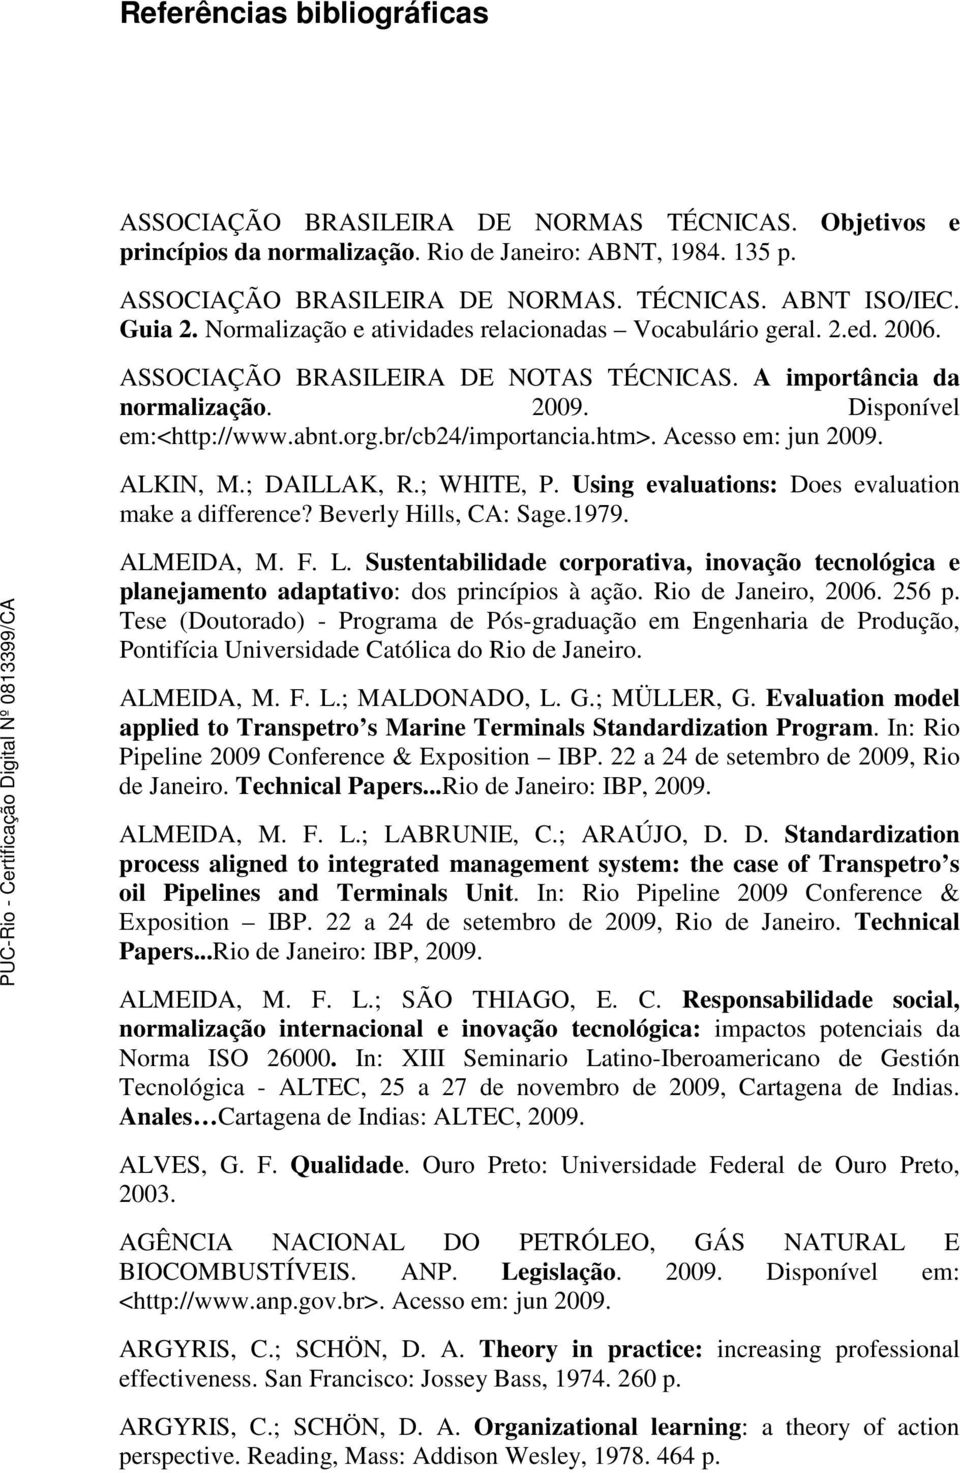 br/cb24/importancia.htm>. Acesso em: jun 2009. ALKIN, M.; DAILLAK, R.; WHITE, P. Using evaluations: Does evaluation make a difference? Beverly Hills, CA: Sage.1979. ALMEIDA, M. F. L.